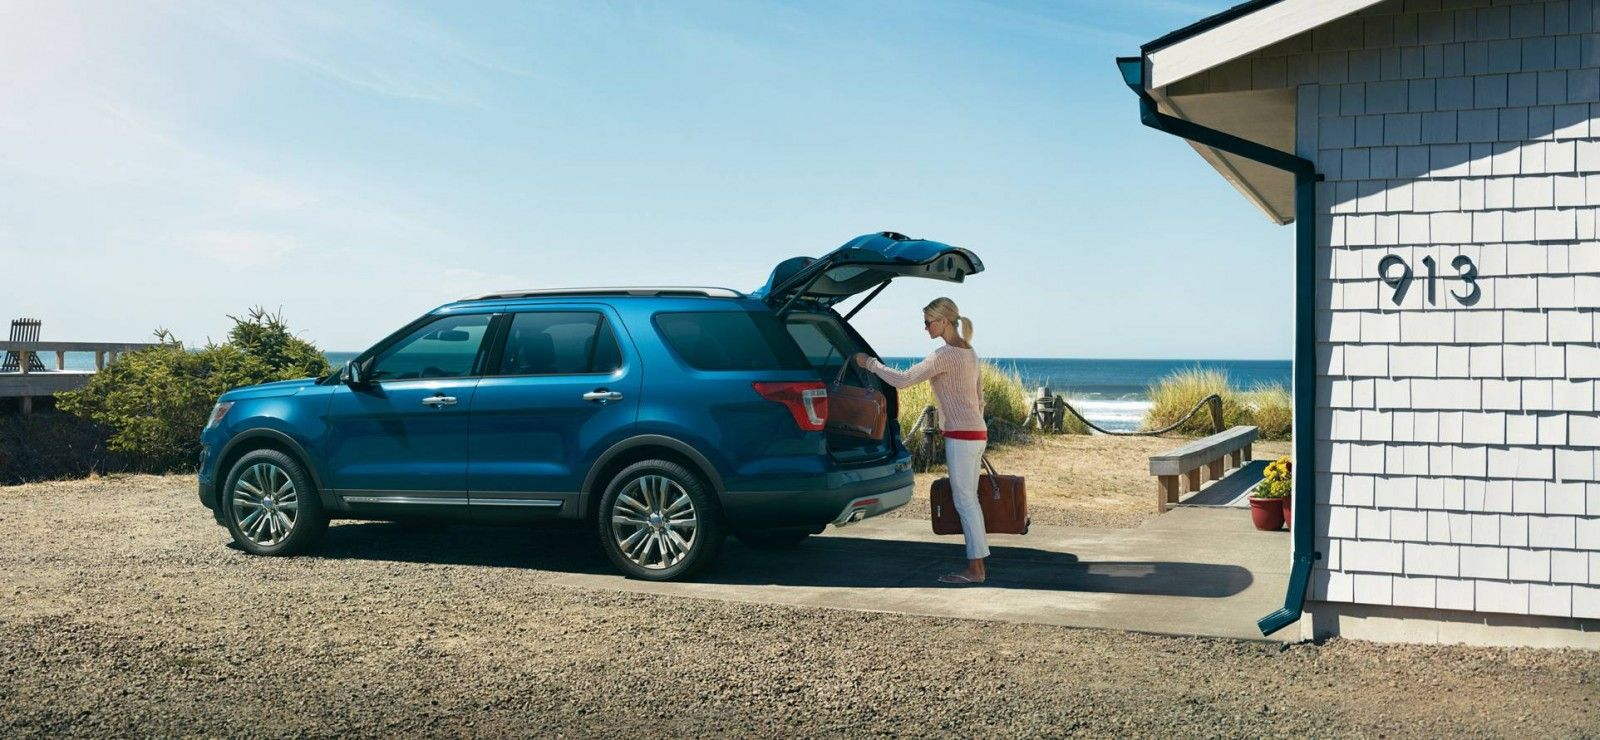 2016 Ford Explorer Colors And Pricing Animated Turntables In